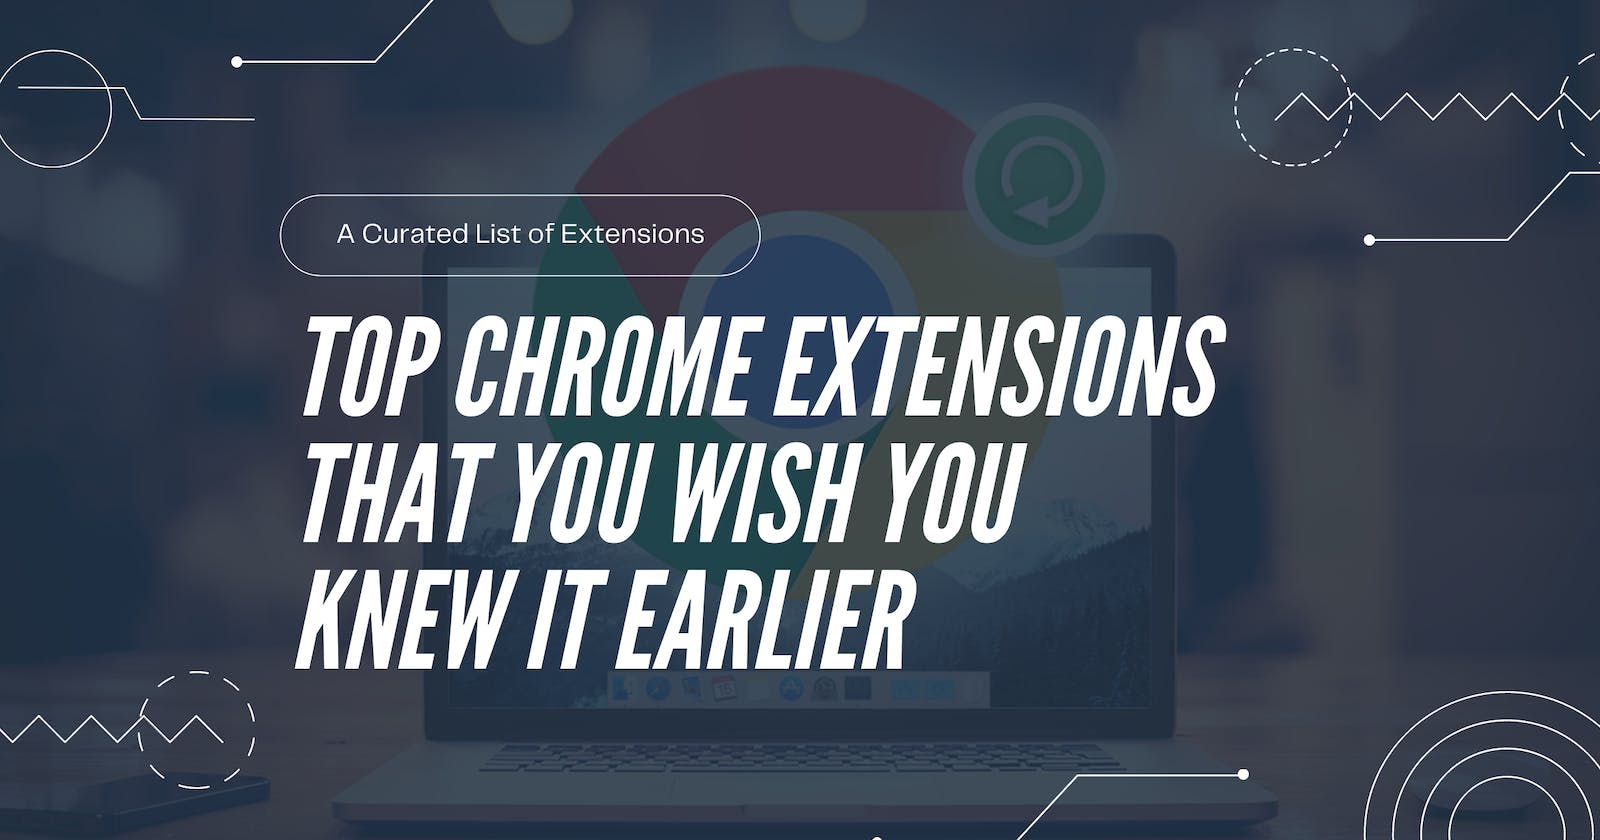 Top Chrome Extensions That You Wish You Knew It Earlier